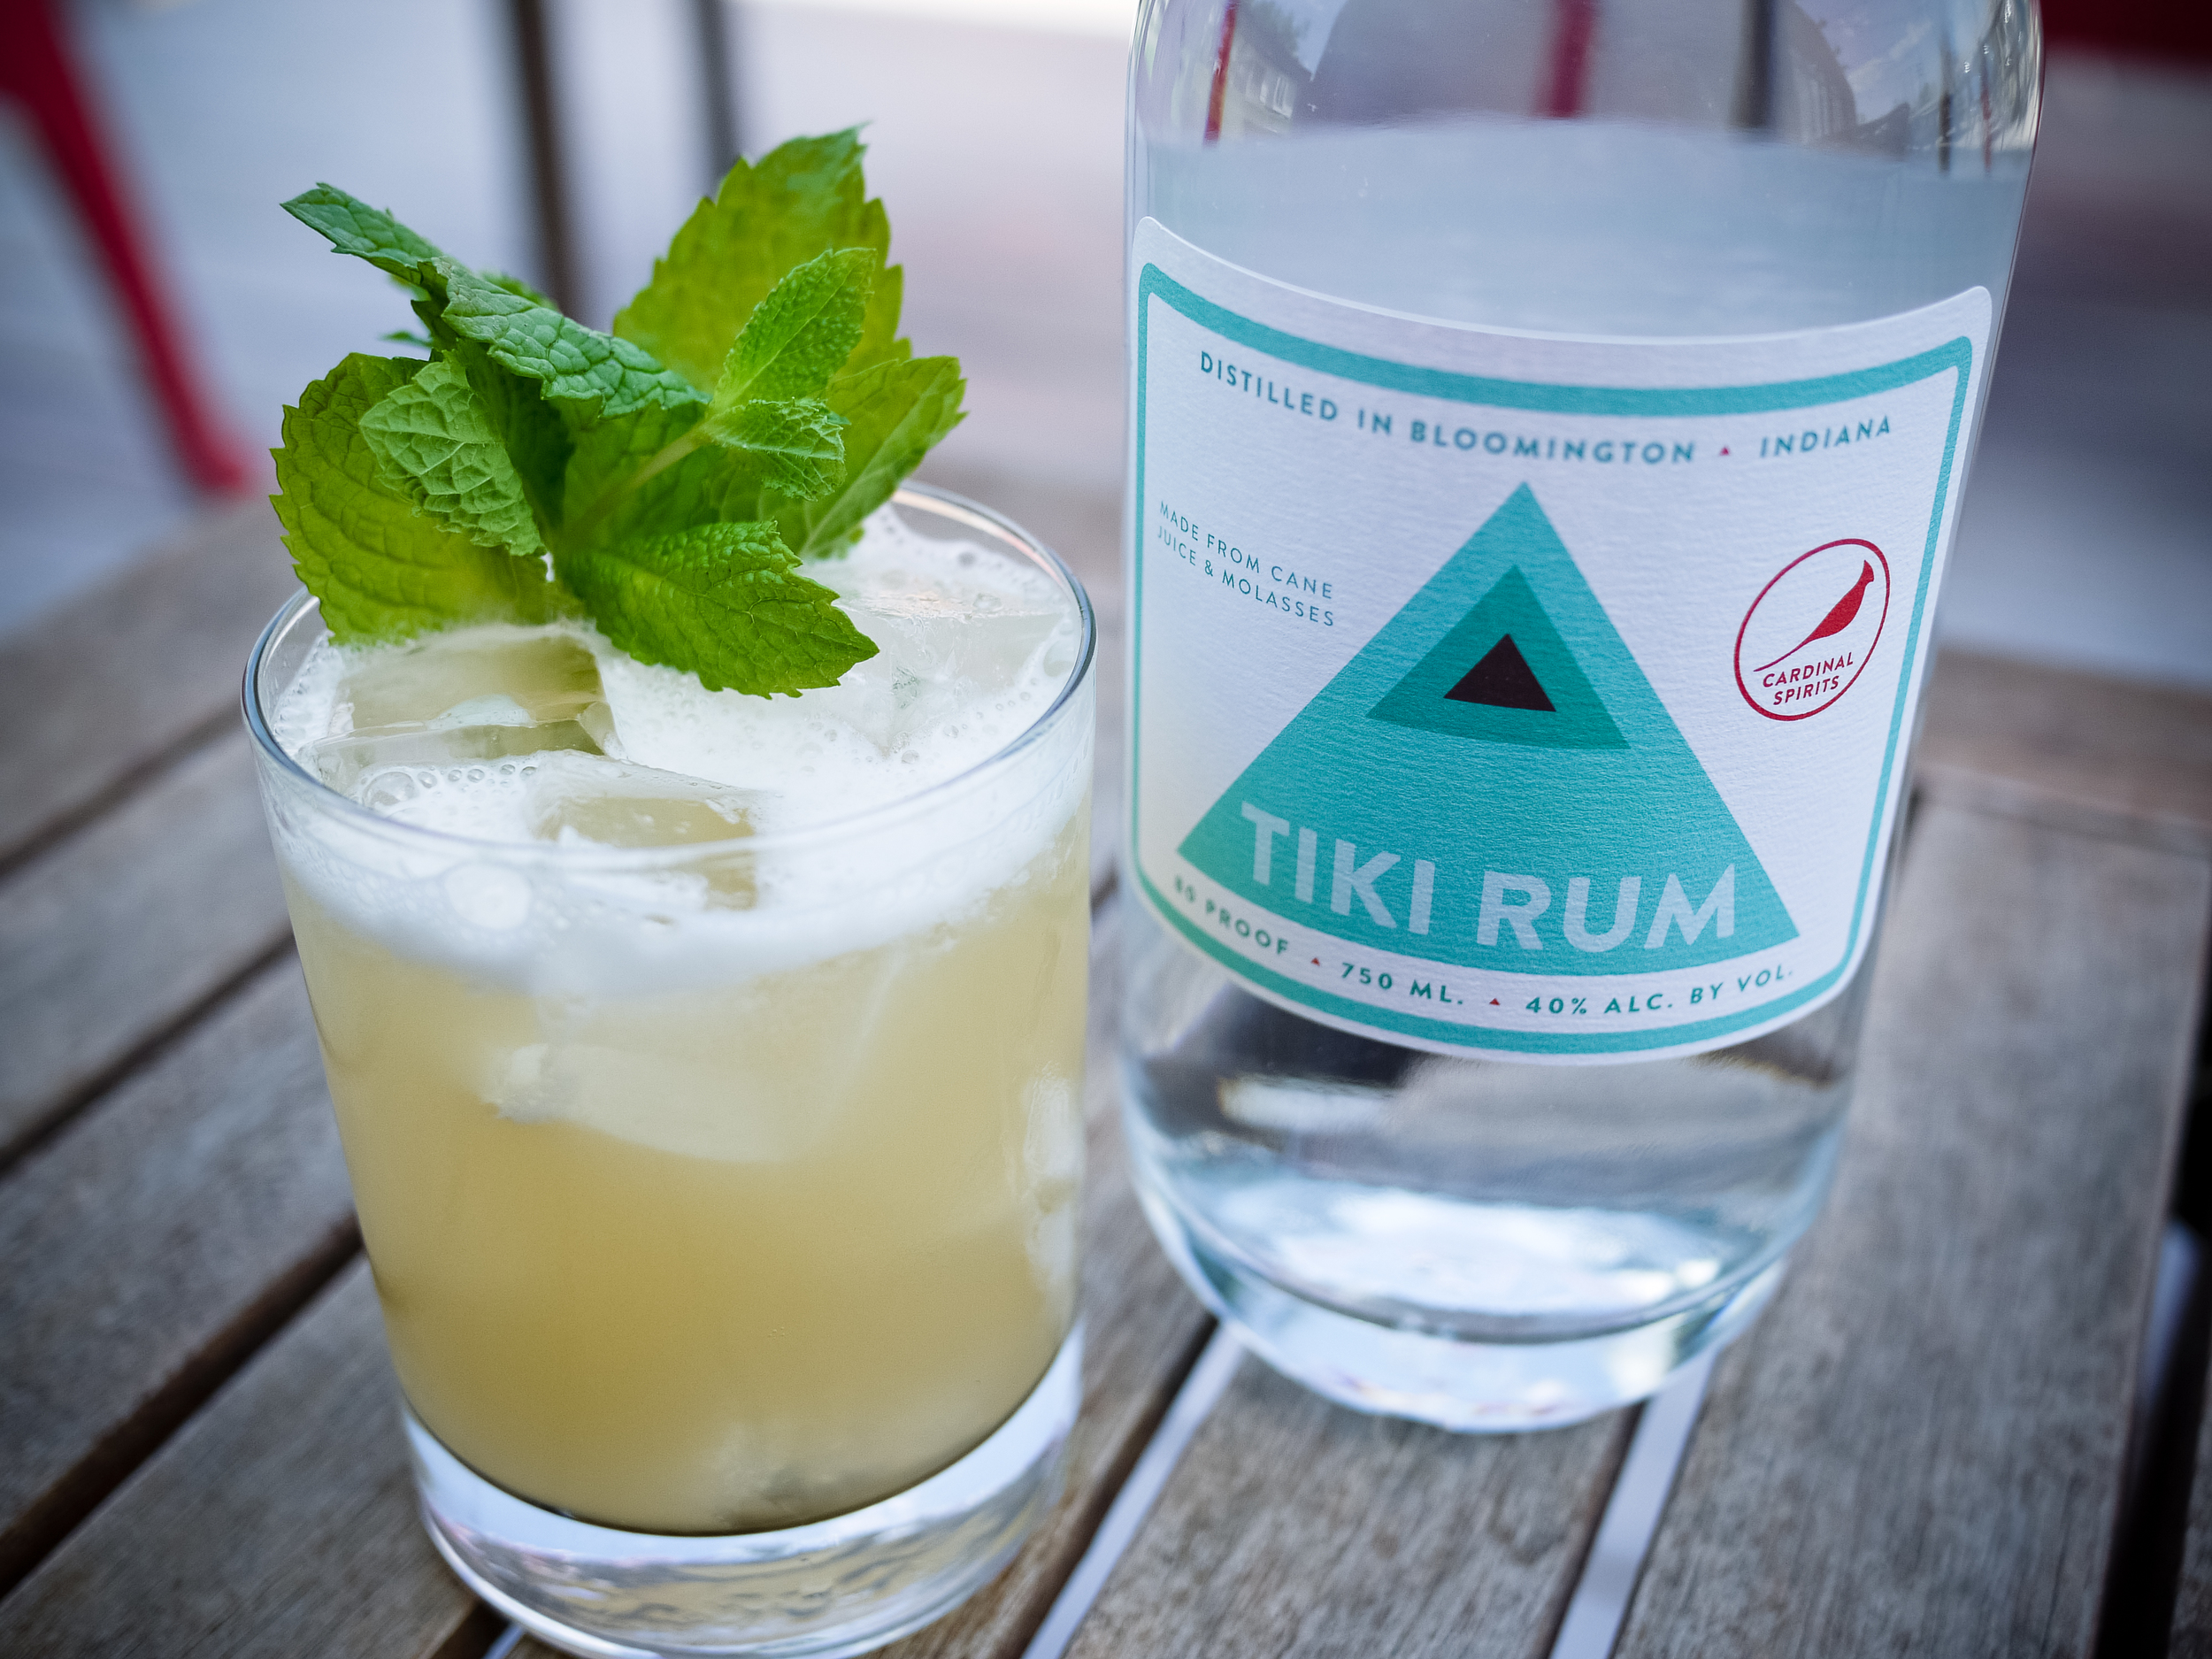 92 Points cocktail made with Tiki Rum